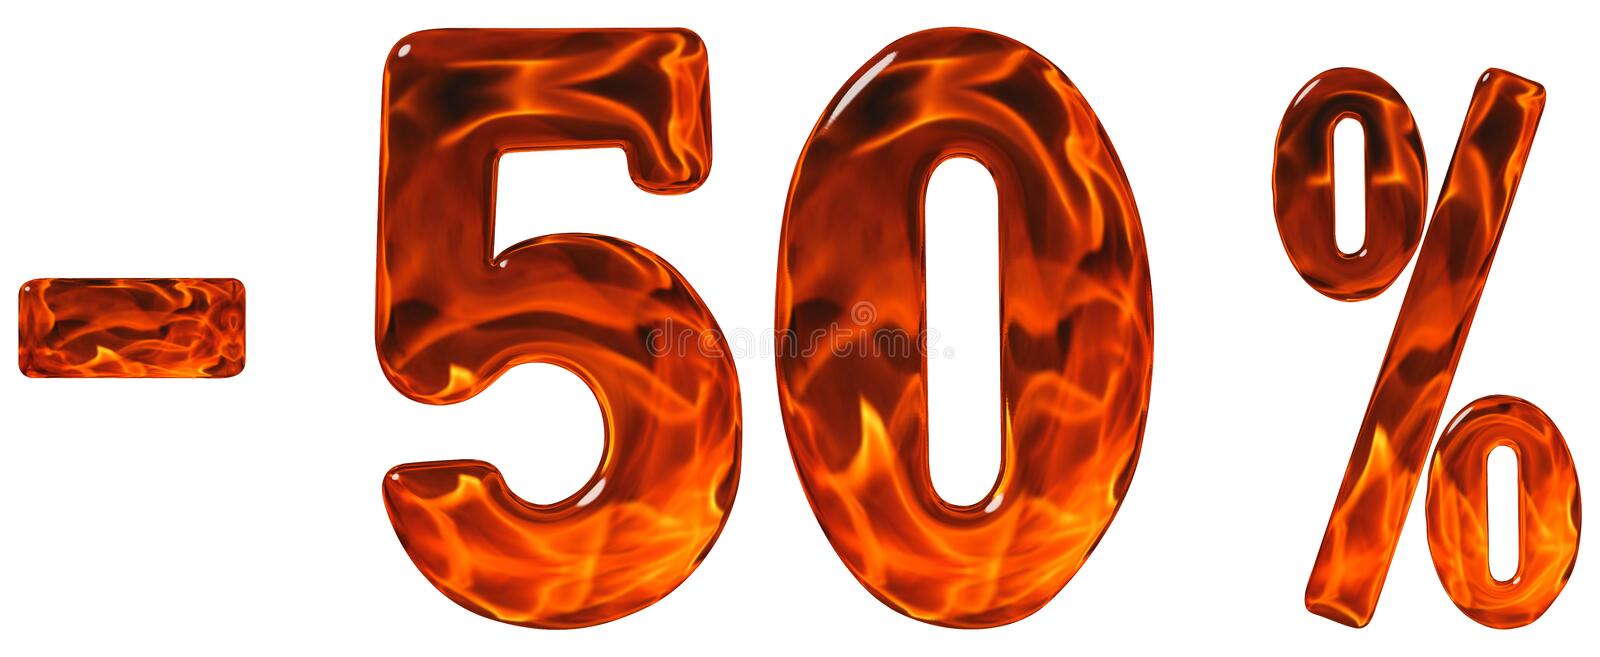 Percent off. Discount. Minus 50, fifty percent, numerals isolat. Ed on white background stock photo